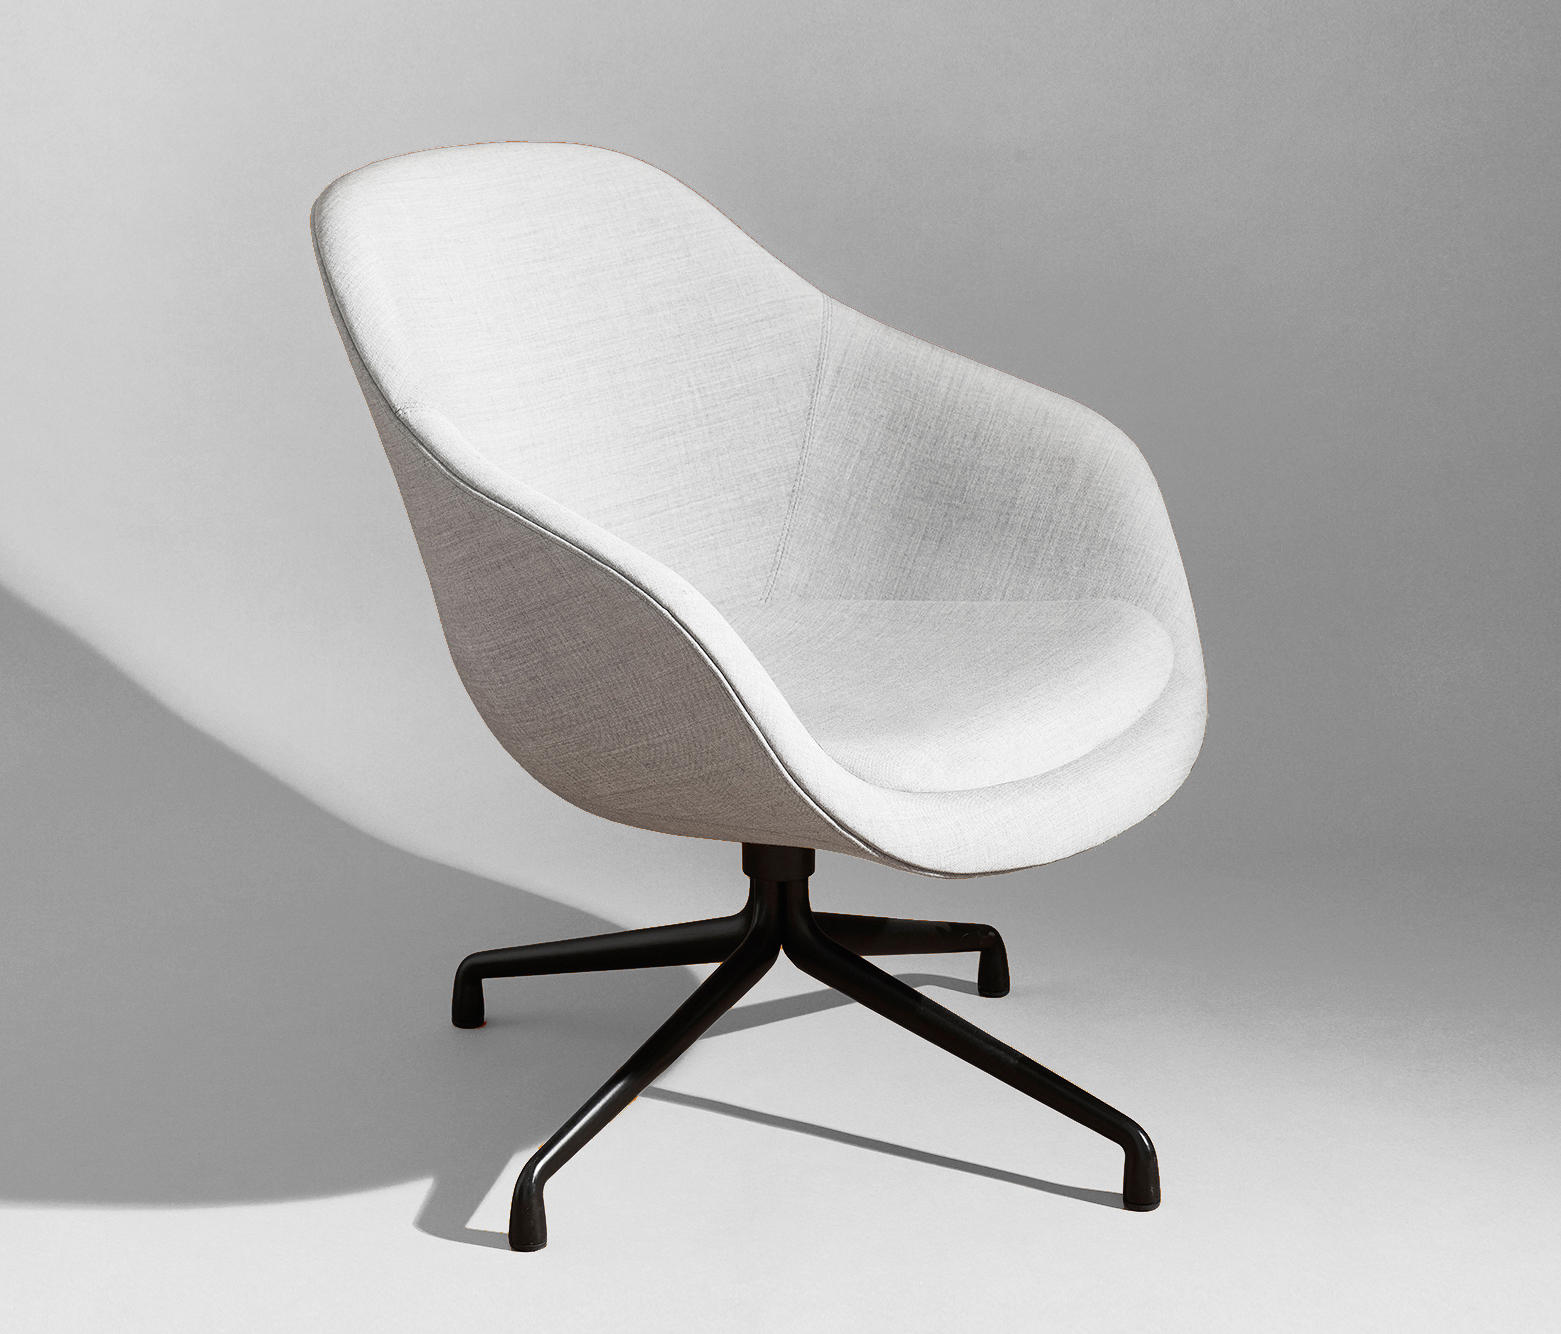 Sessel Hay About A Lounge Chair Aal81 Sessel Von Hay Architonic